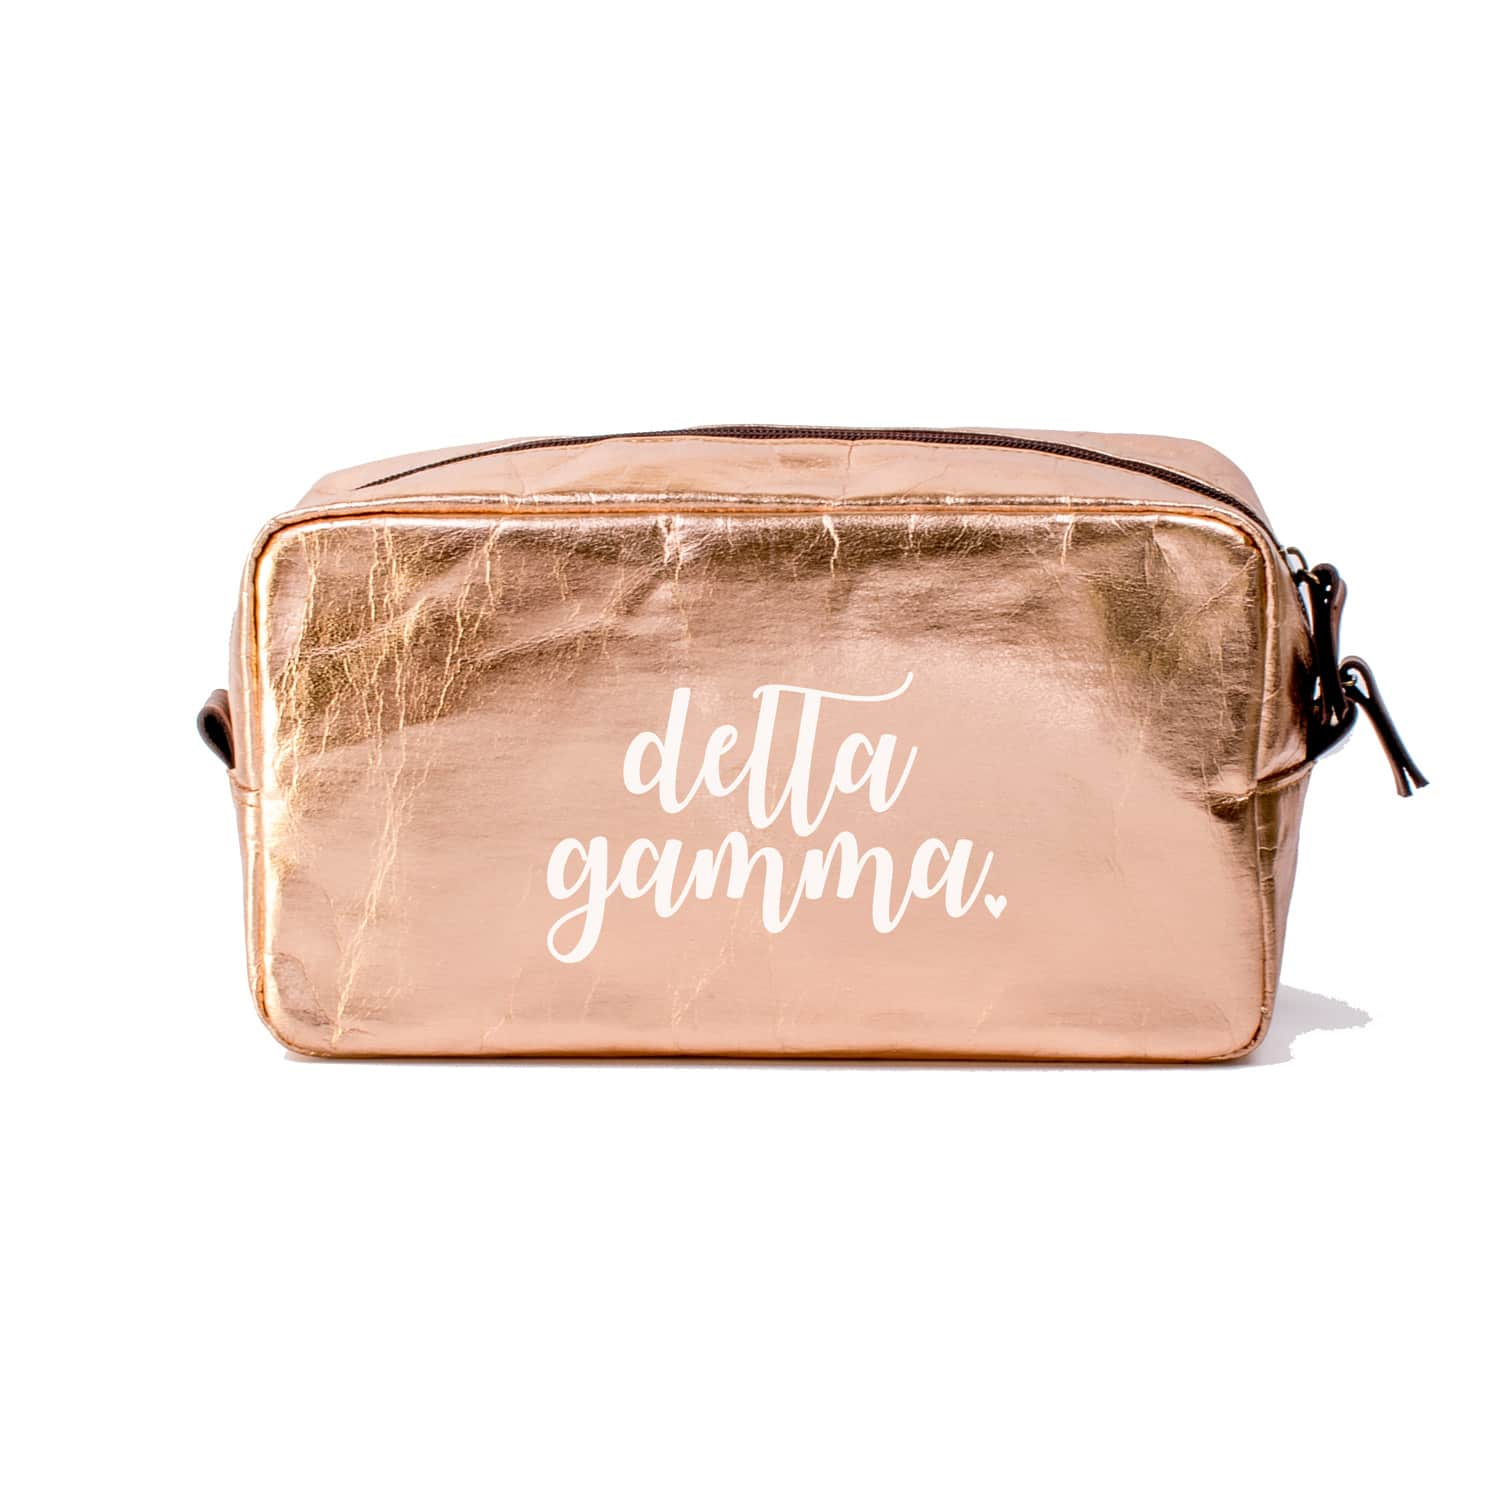 Cosmetic-Bags-Rose-Gold-Delta-Gamma-Large-White-A